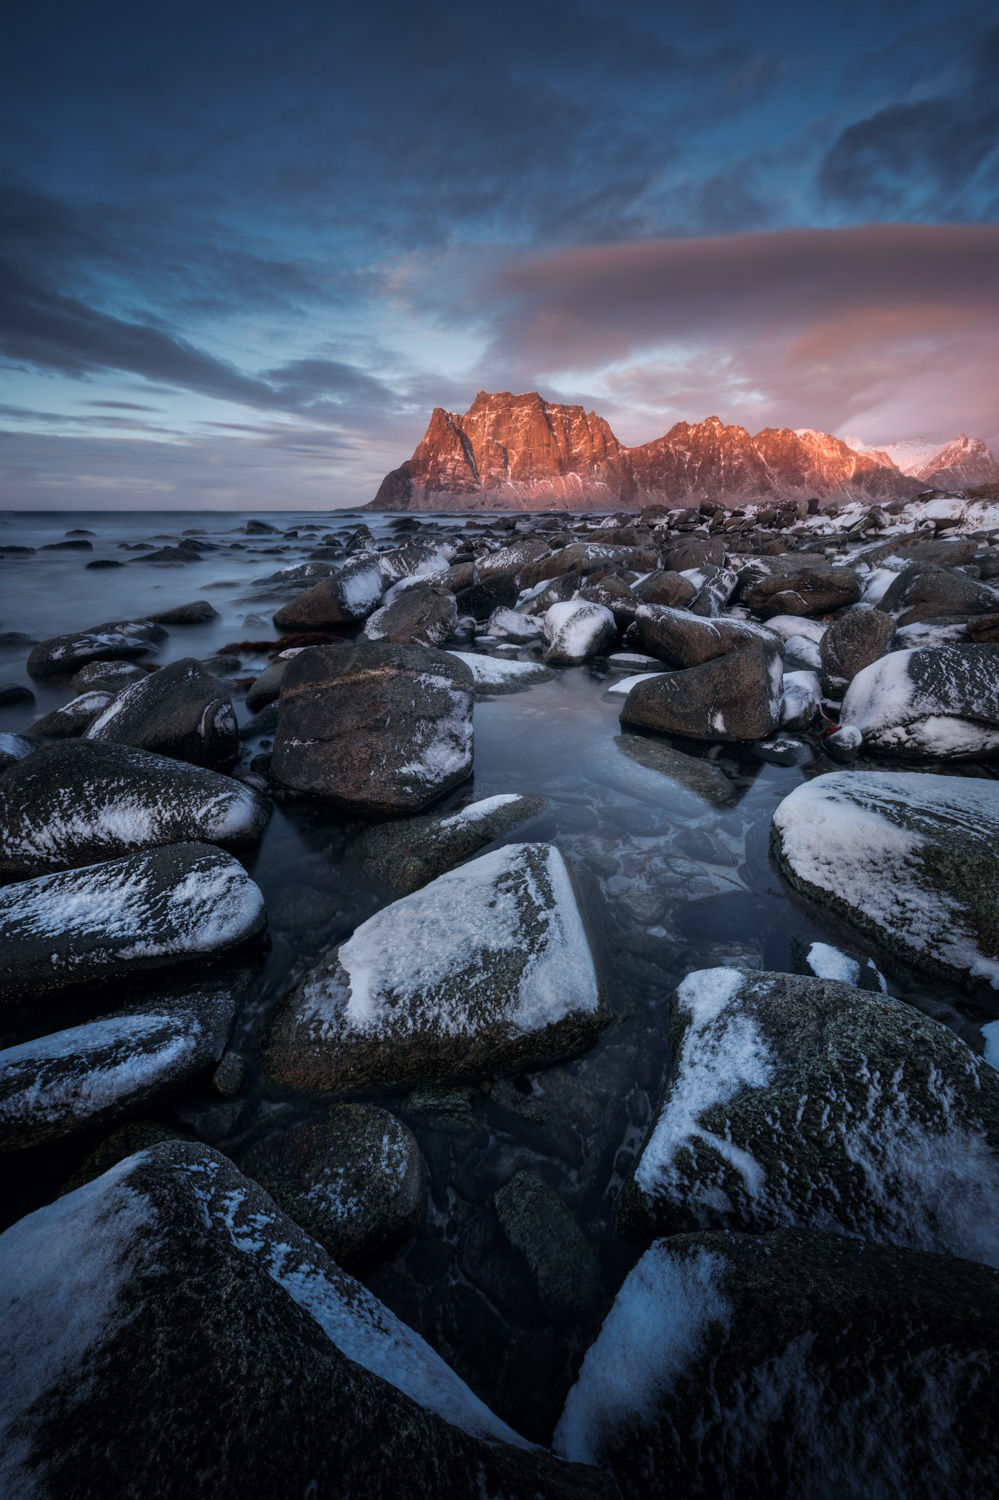 Avoid These 4 Post-Processing Mistakes That Can Ruin Your Images - rocky mountain scene